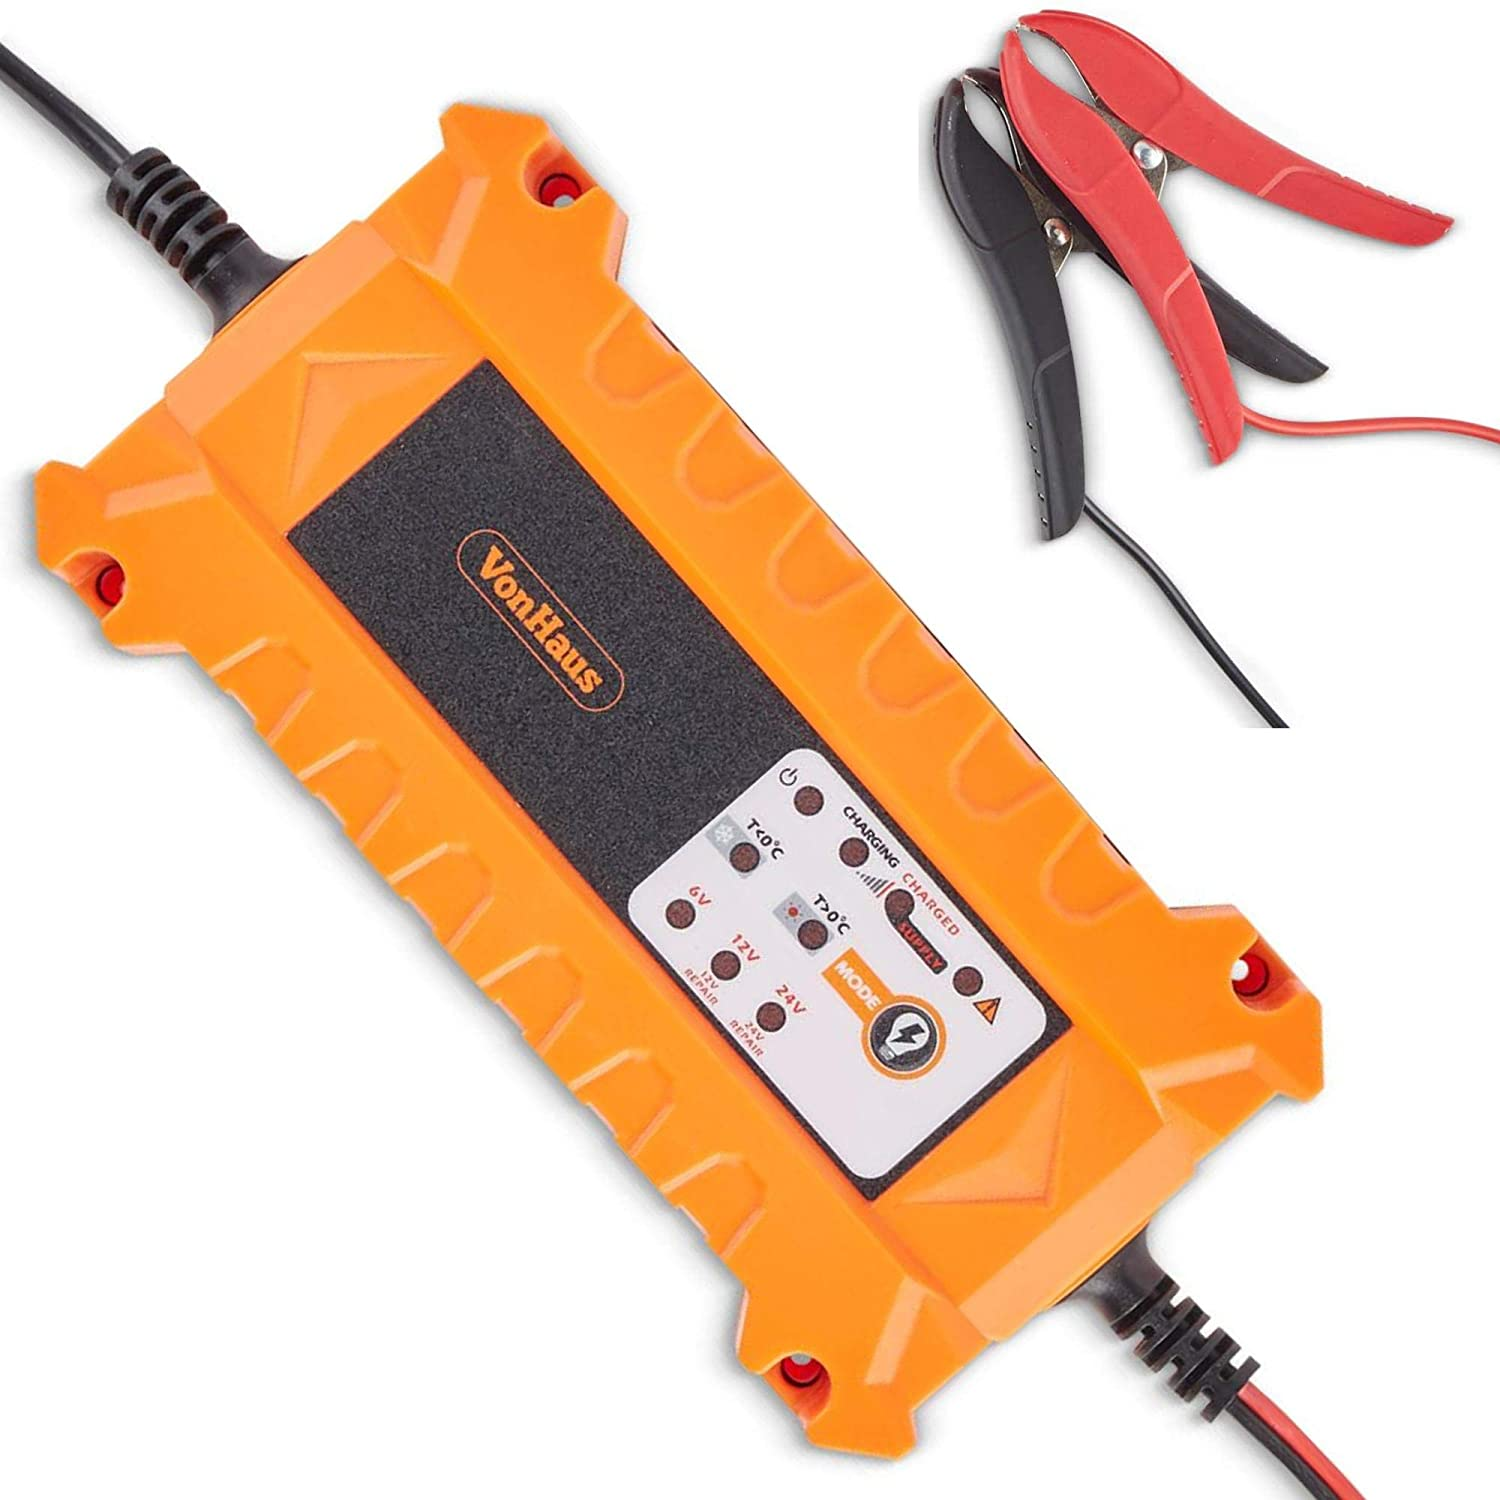 VonHaus Automatic Car Battery Charger 7A with Advanced Vehicle Battery Diagnosis, Charge & Recovery/Reconditioning for use on 6V, 12V and 24V Batteries